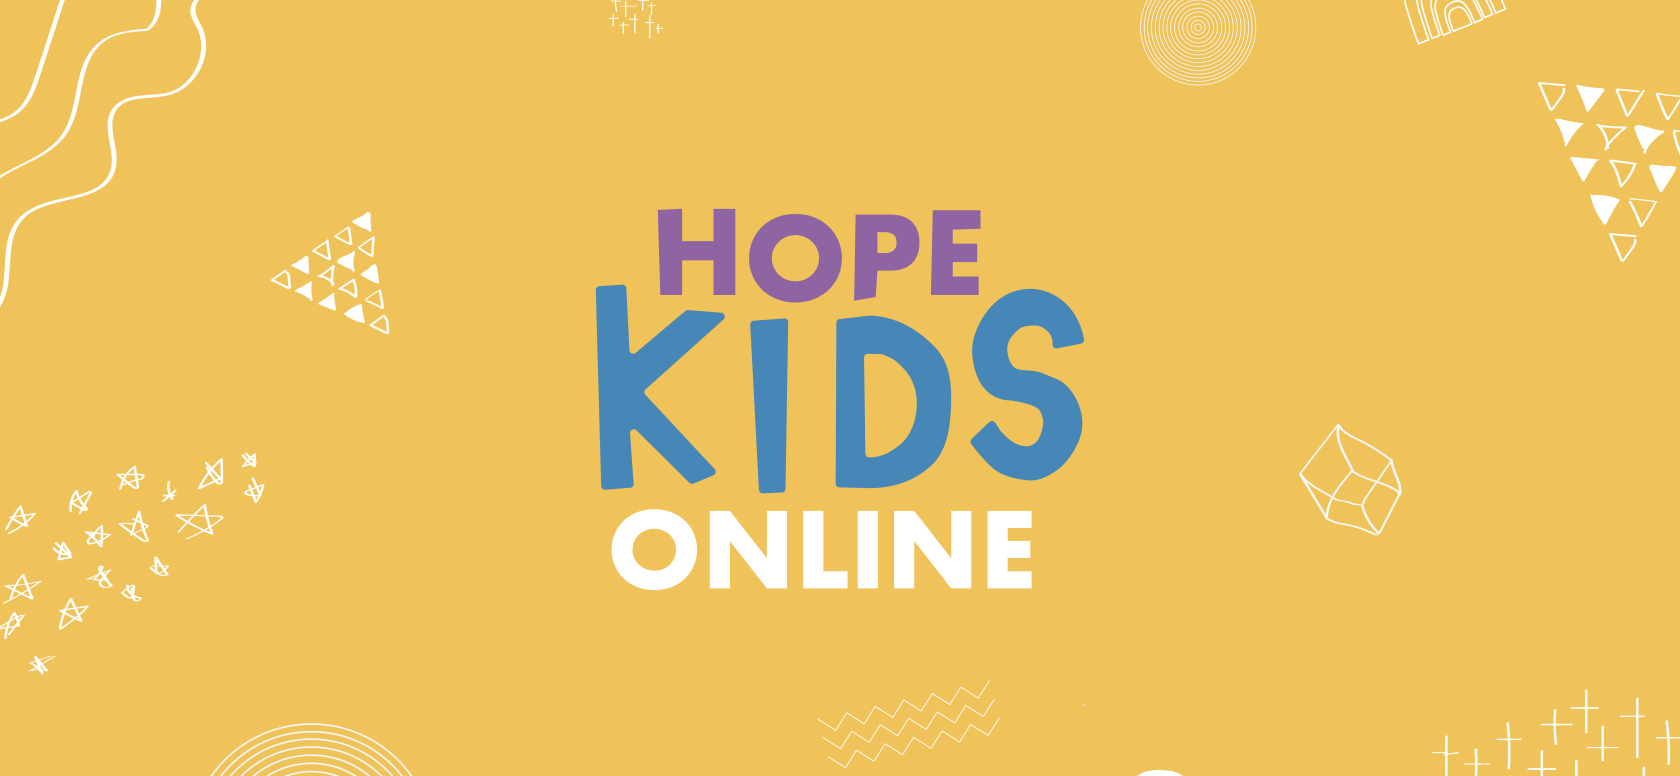 Hope_Kids_Online_Web_Banner-1680x776-1